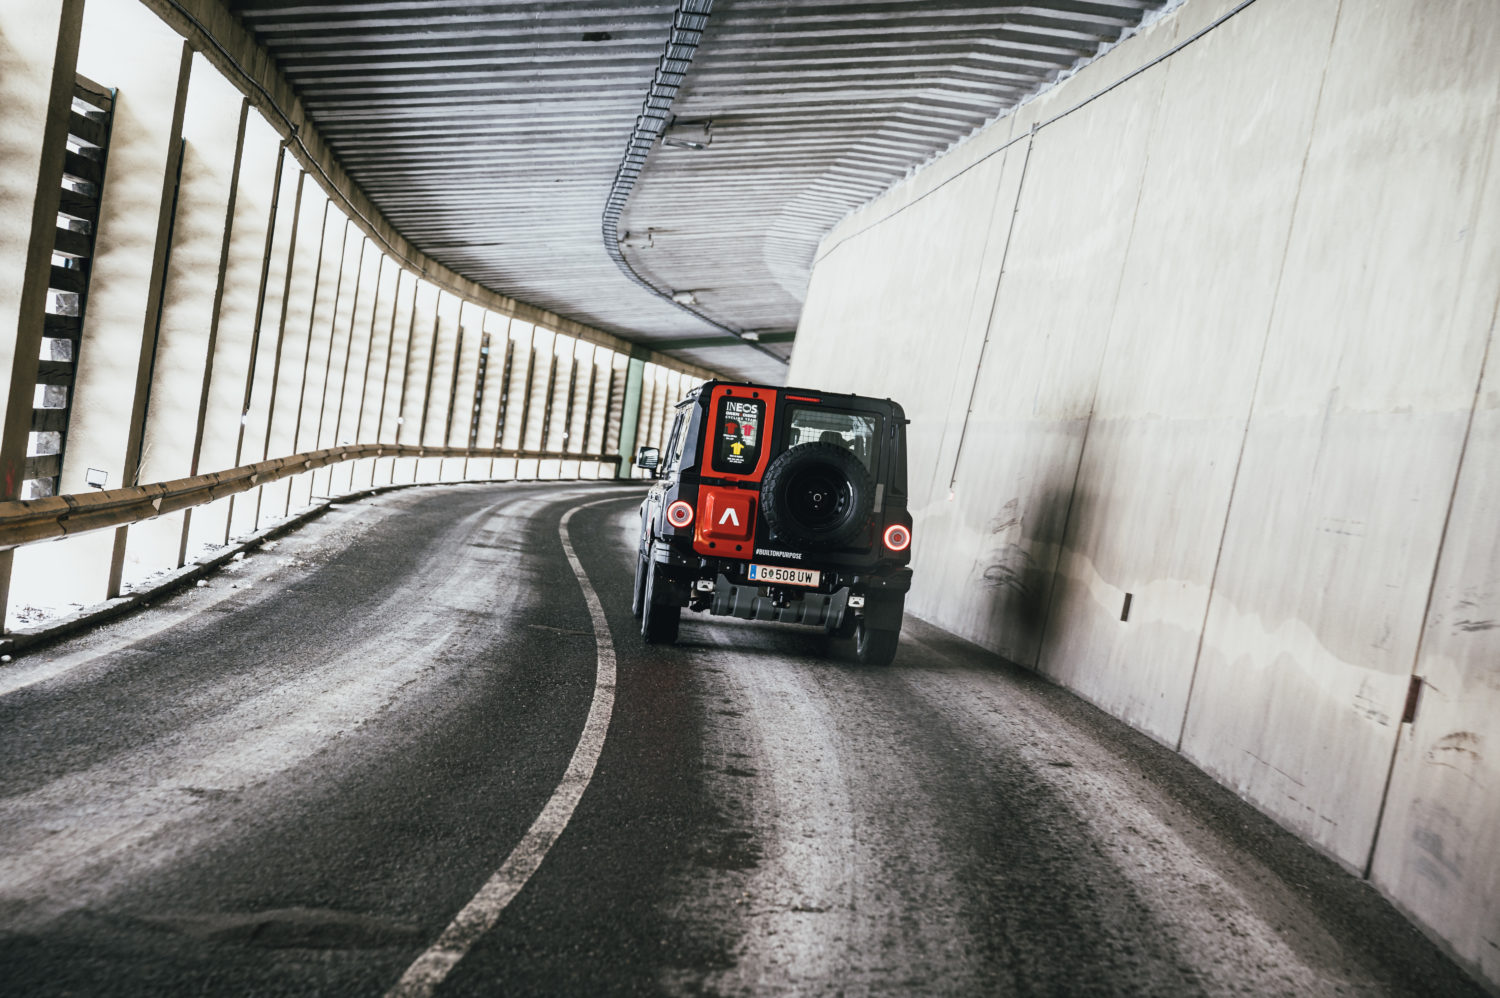 The vehicle was also driven on public roads in Austria